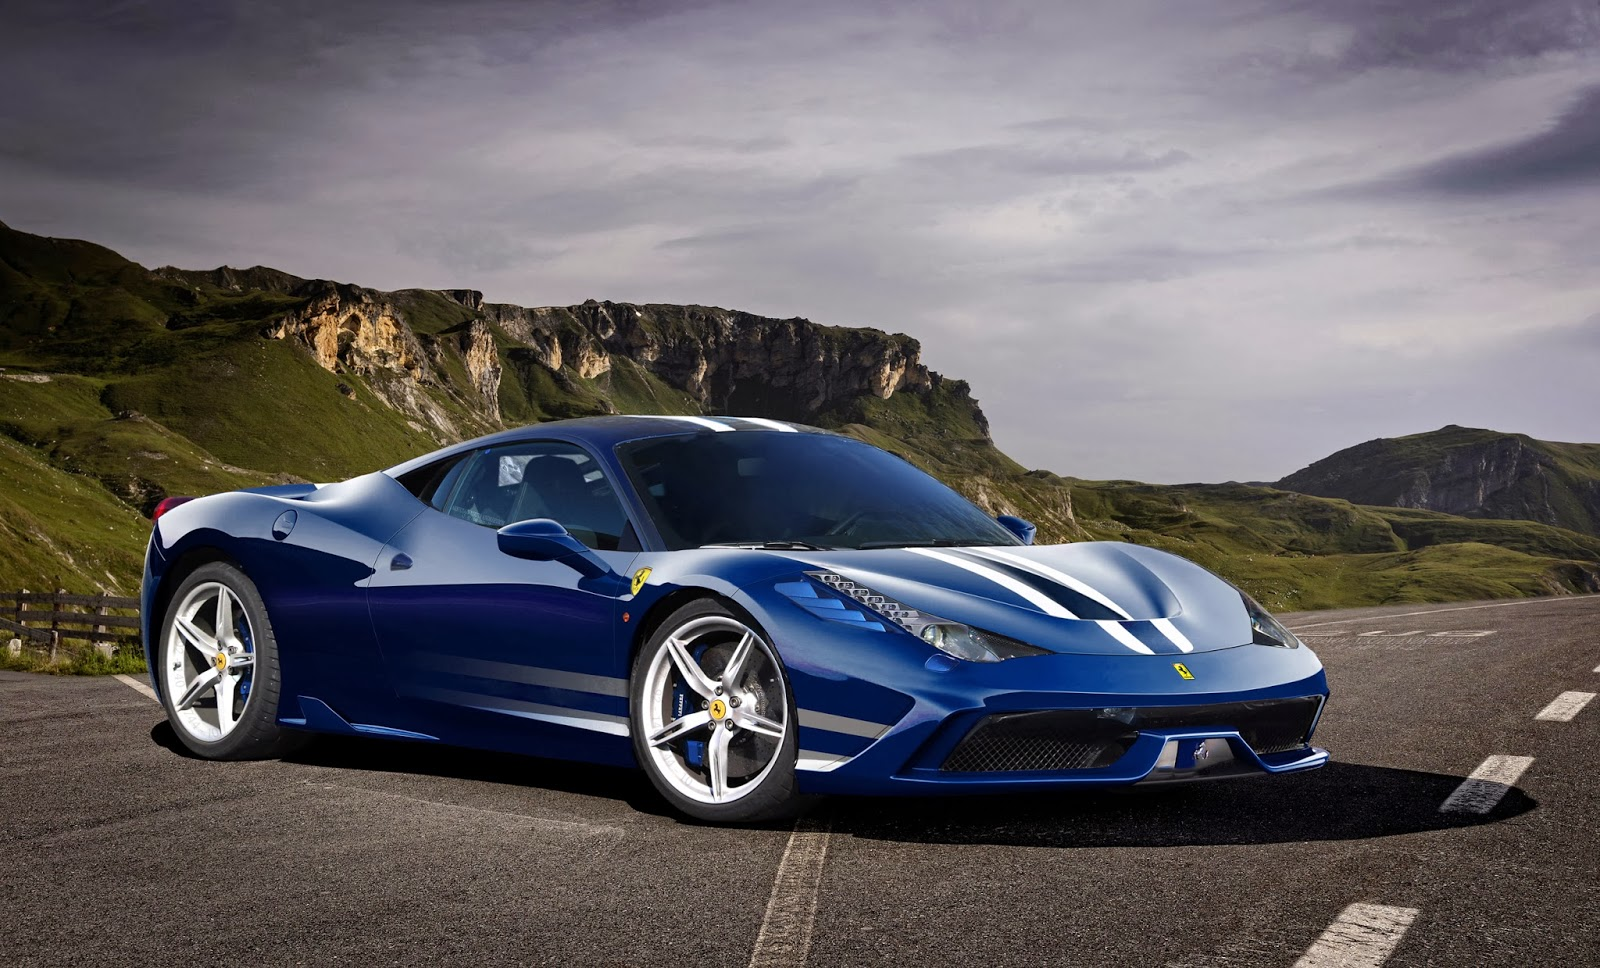 Ferrari Italia Blue Car HD Wallpaper   Sport Cars HD Wallpapers 1600x968